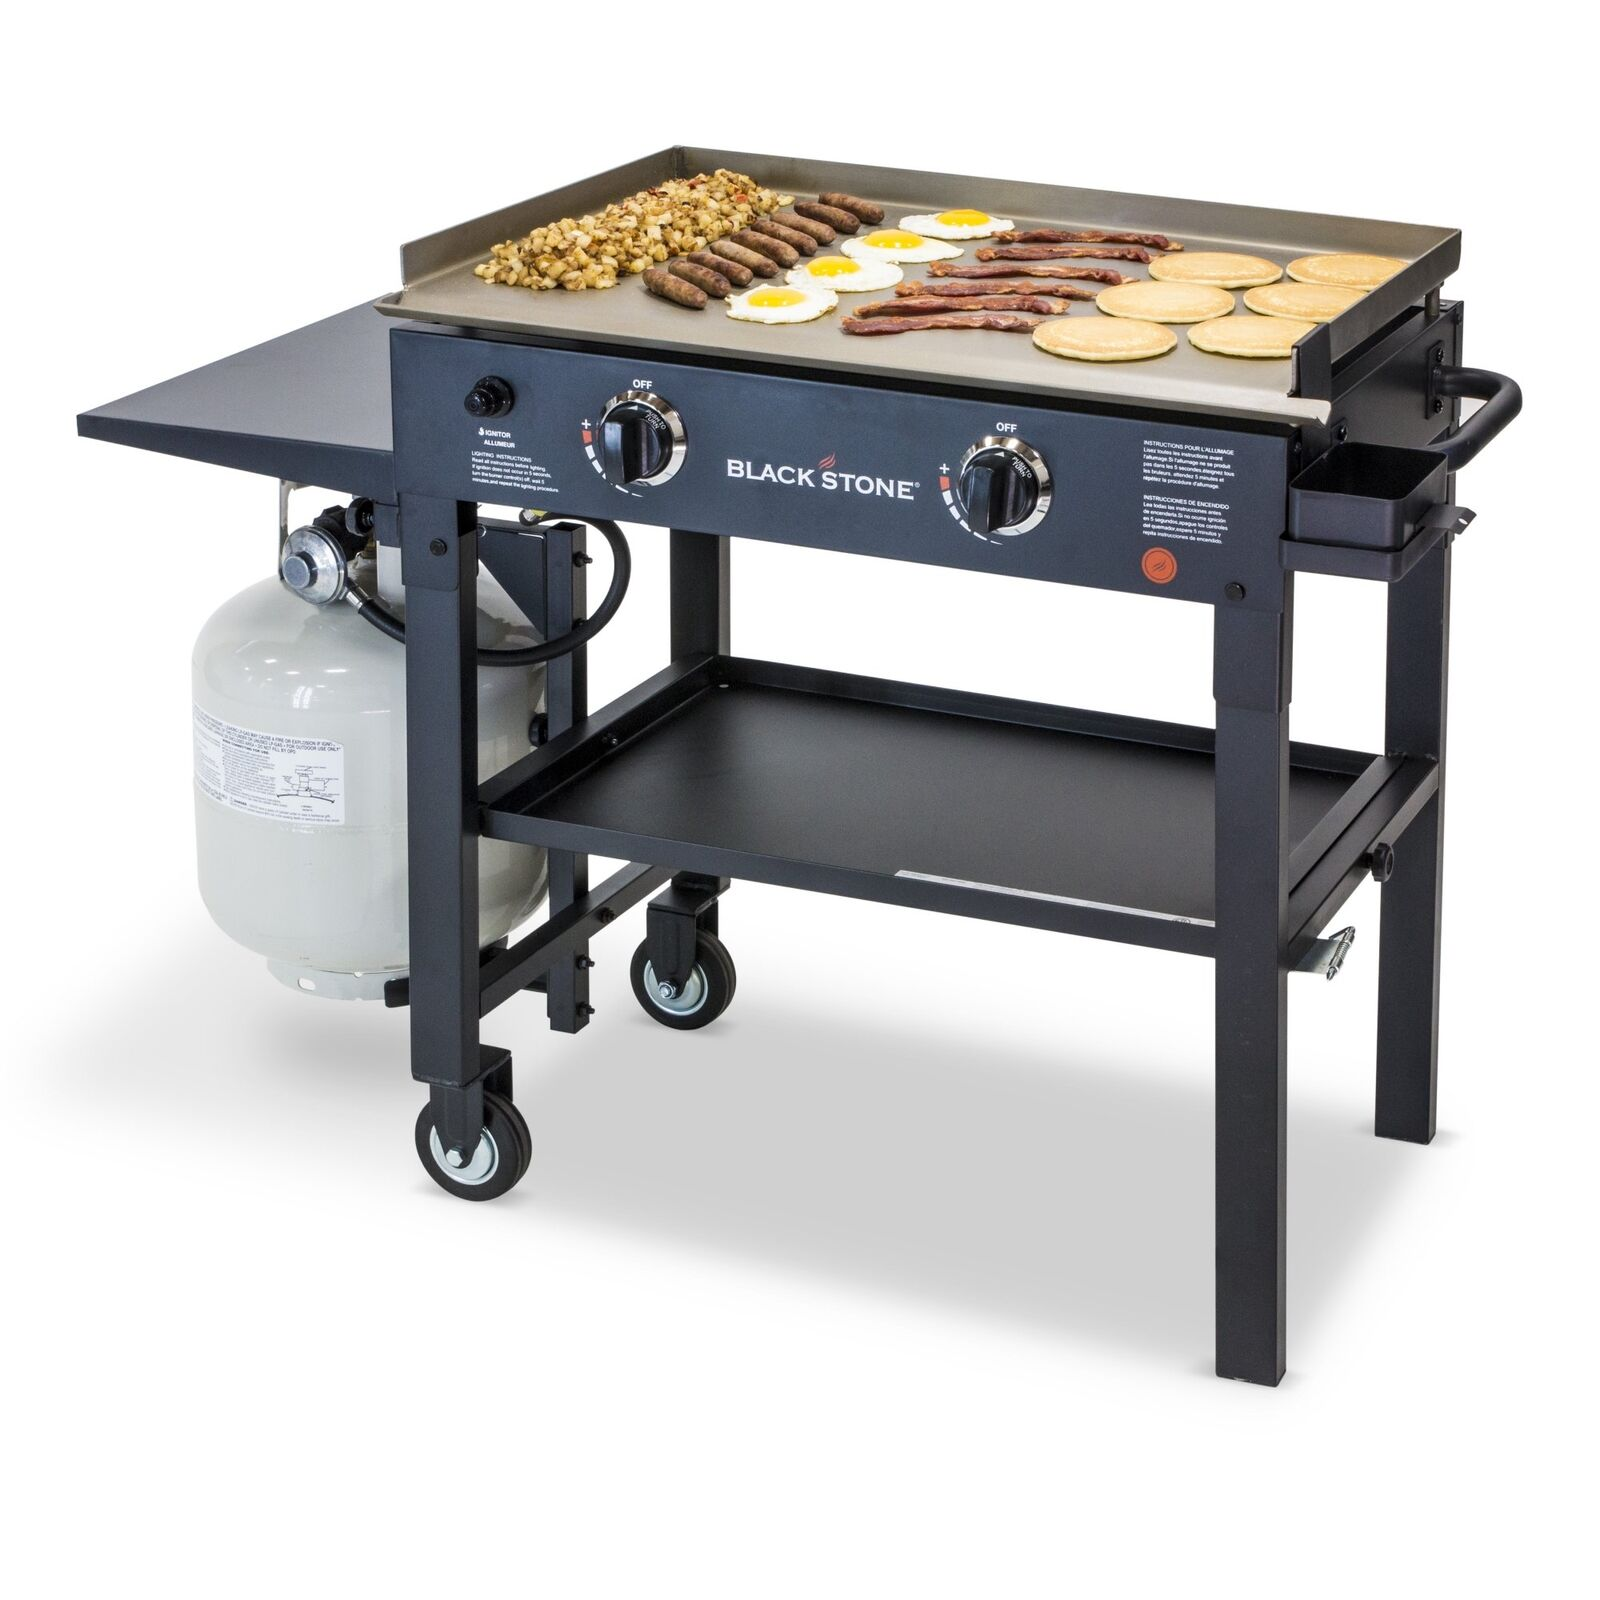 Two Burner Commercial Griddle Flat Top Outdoor Griddle Large Bbq Gas Grill Steel